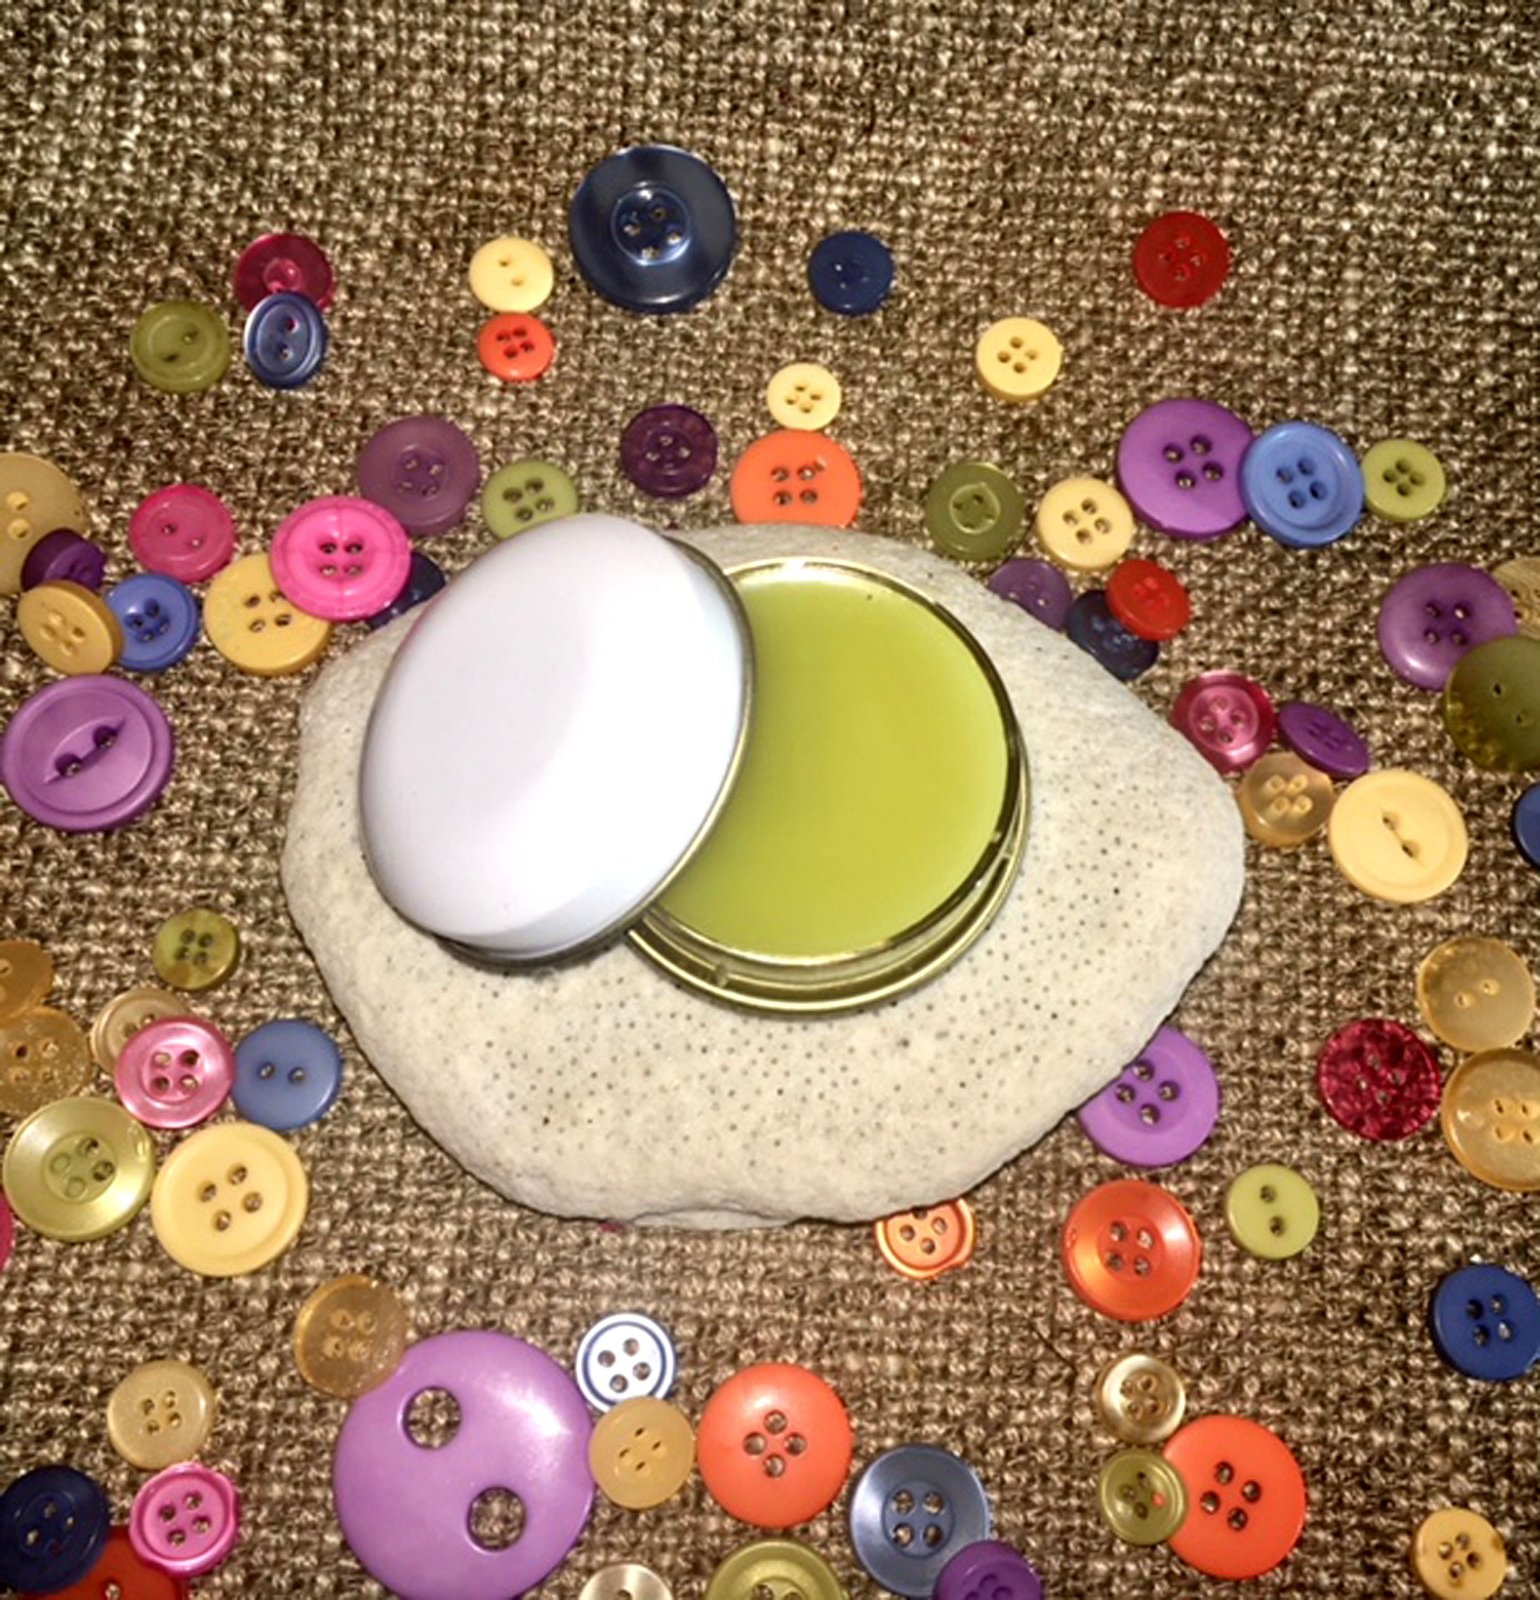 Primary image for Tamanu Salve .5oz Balm Damaged Skin Support Soothe Heal Restore Reverse Acne Pim